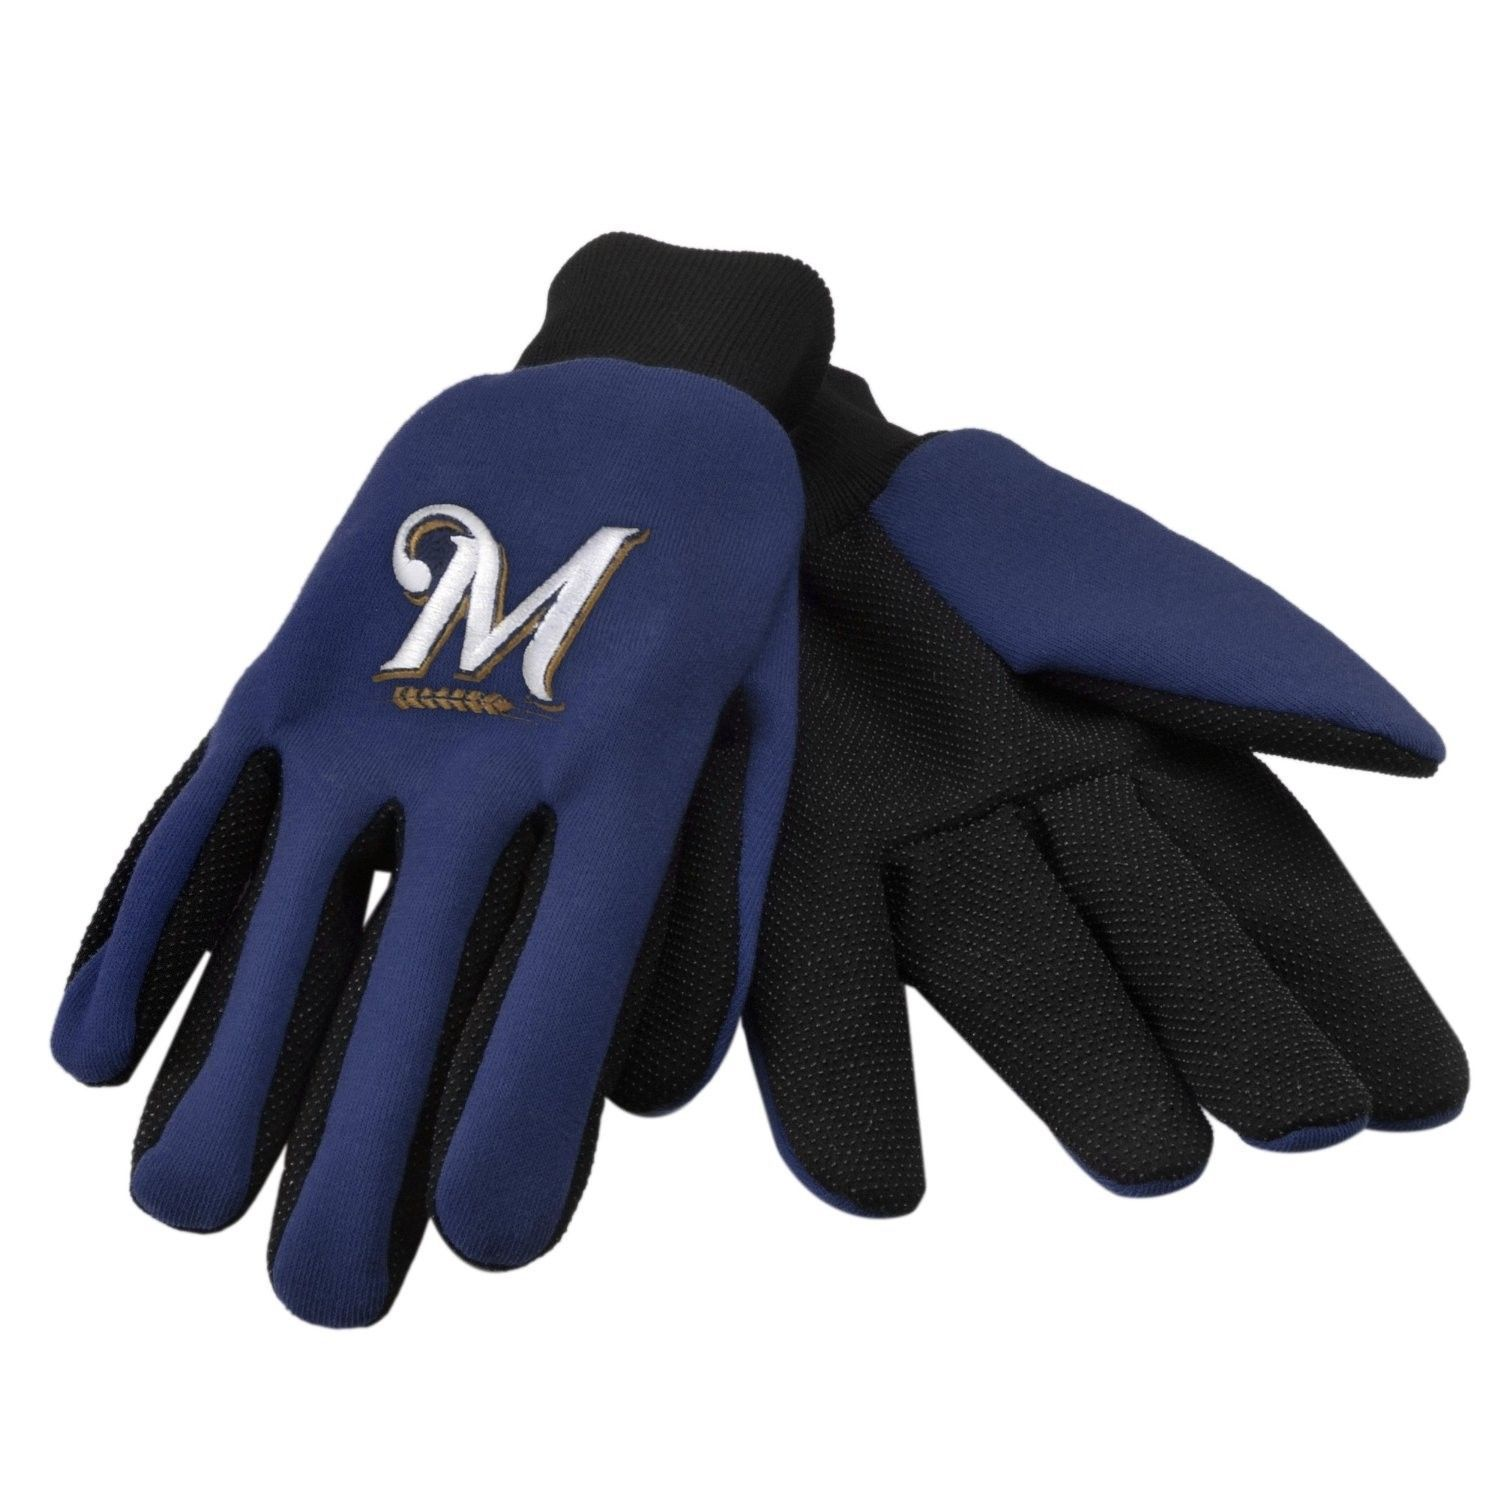 MILWAUKEE BREWERS TEAM TAILGATE GAME DAY PARTY UTILITY WORK GLOVES MLB BASEBALL